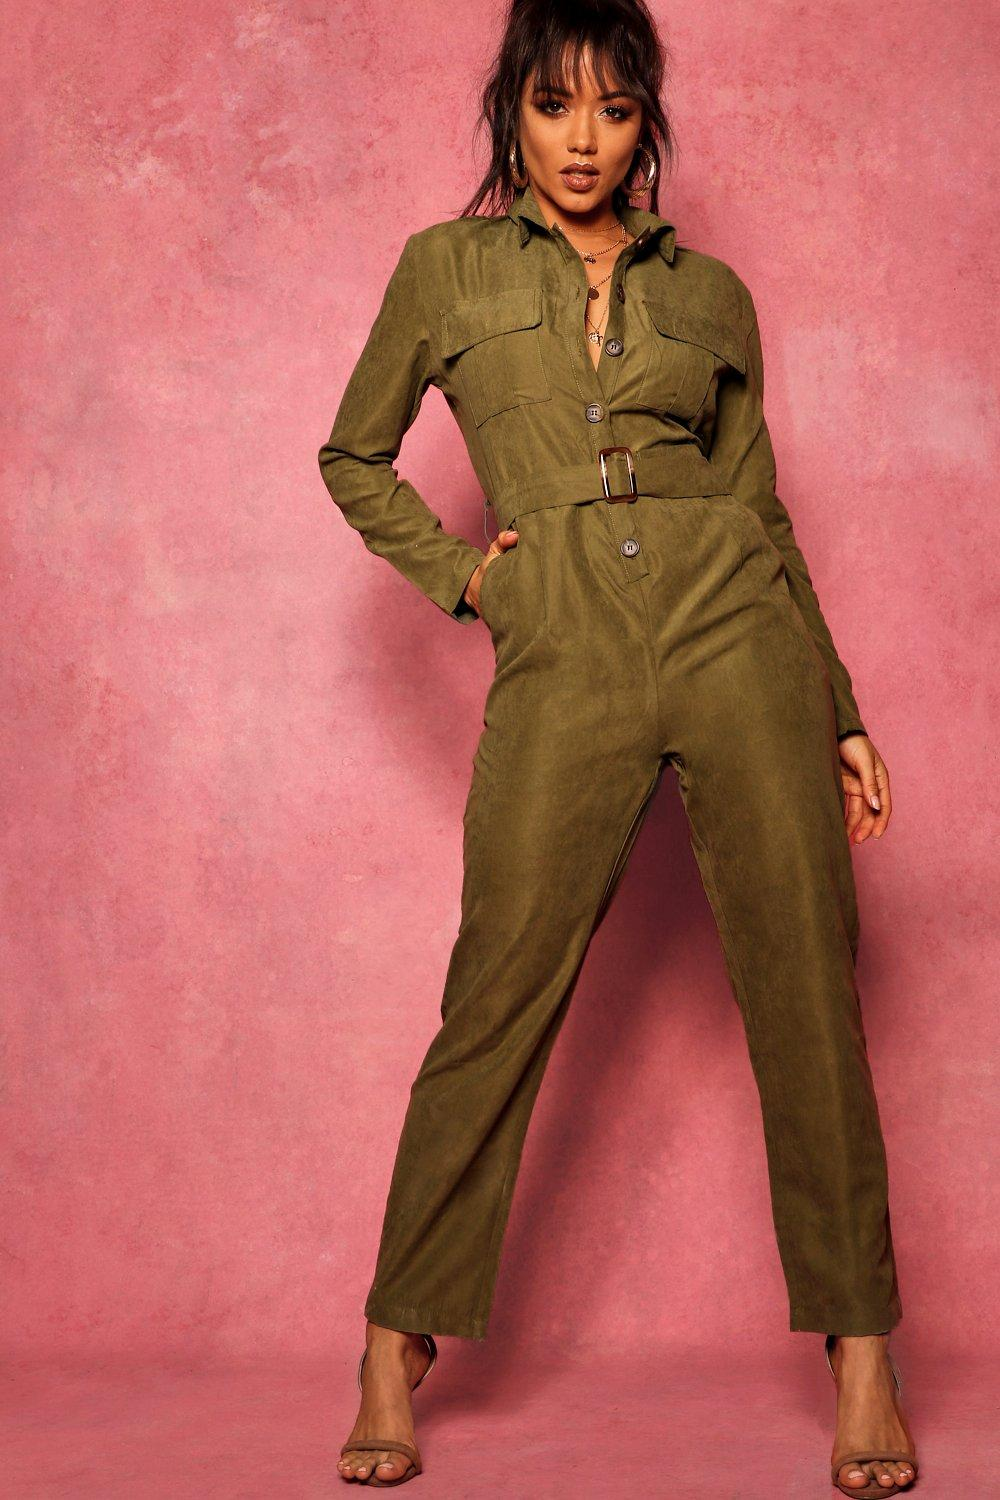 boohoo Womens Suedette Utility Cargo Belted Jumpsuit - Green - 10, Green